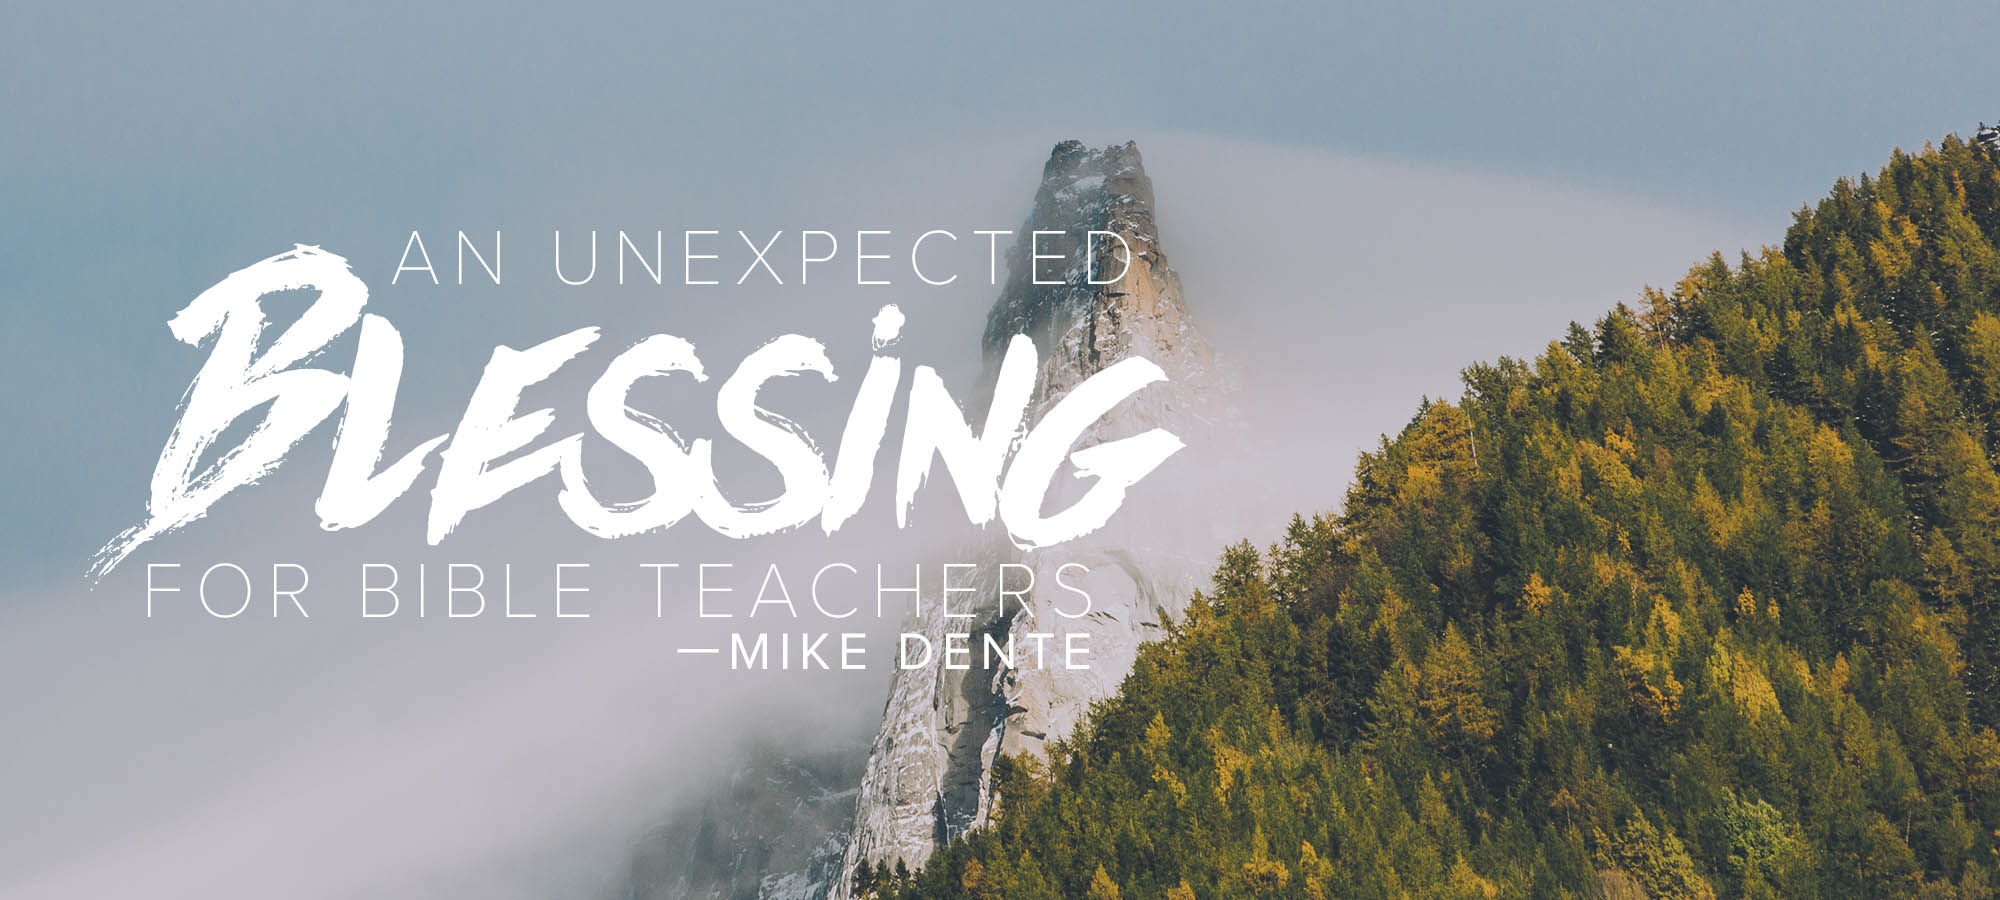 An Unexpected Blessing for Bible Teachers